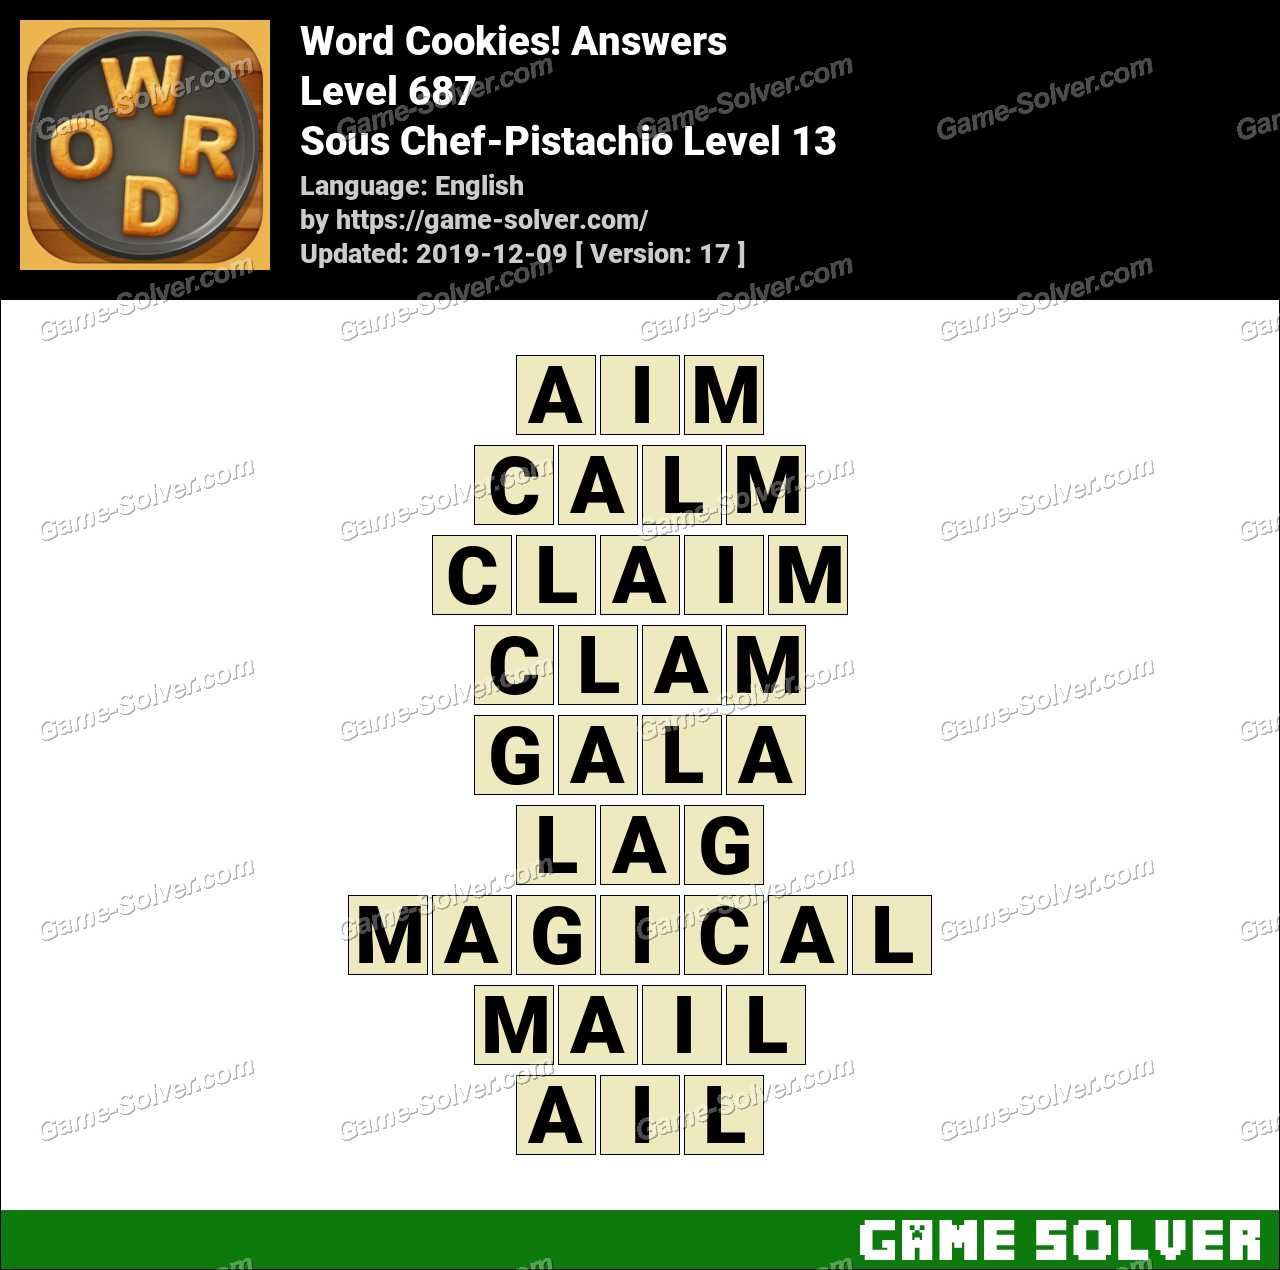 Word Cookies Sous Chef-Pistachio Level 13 Answers